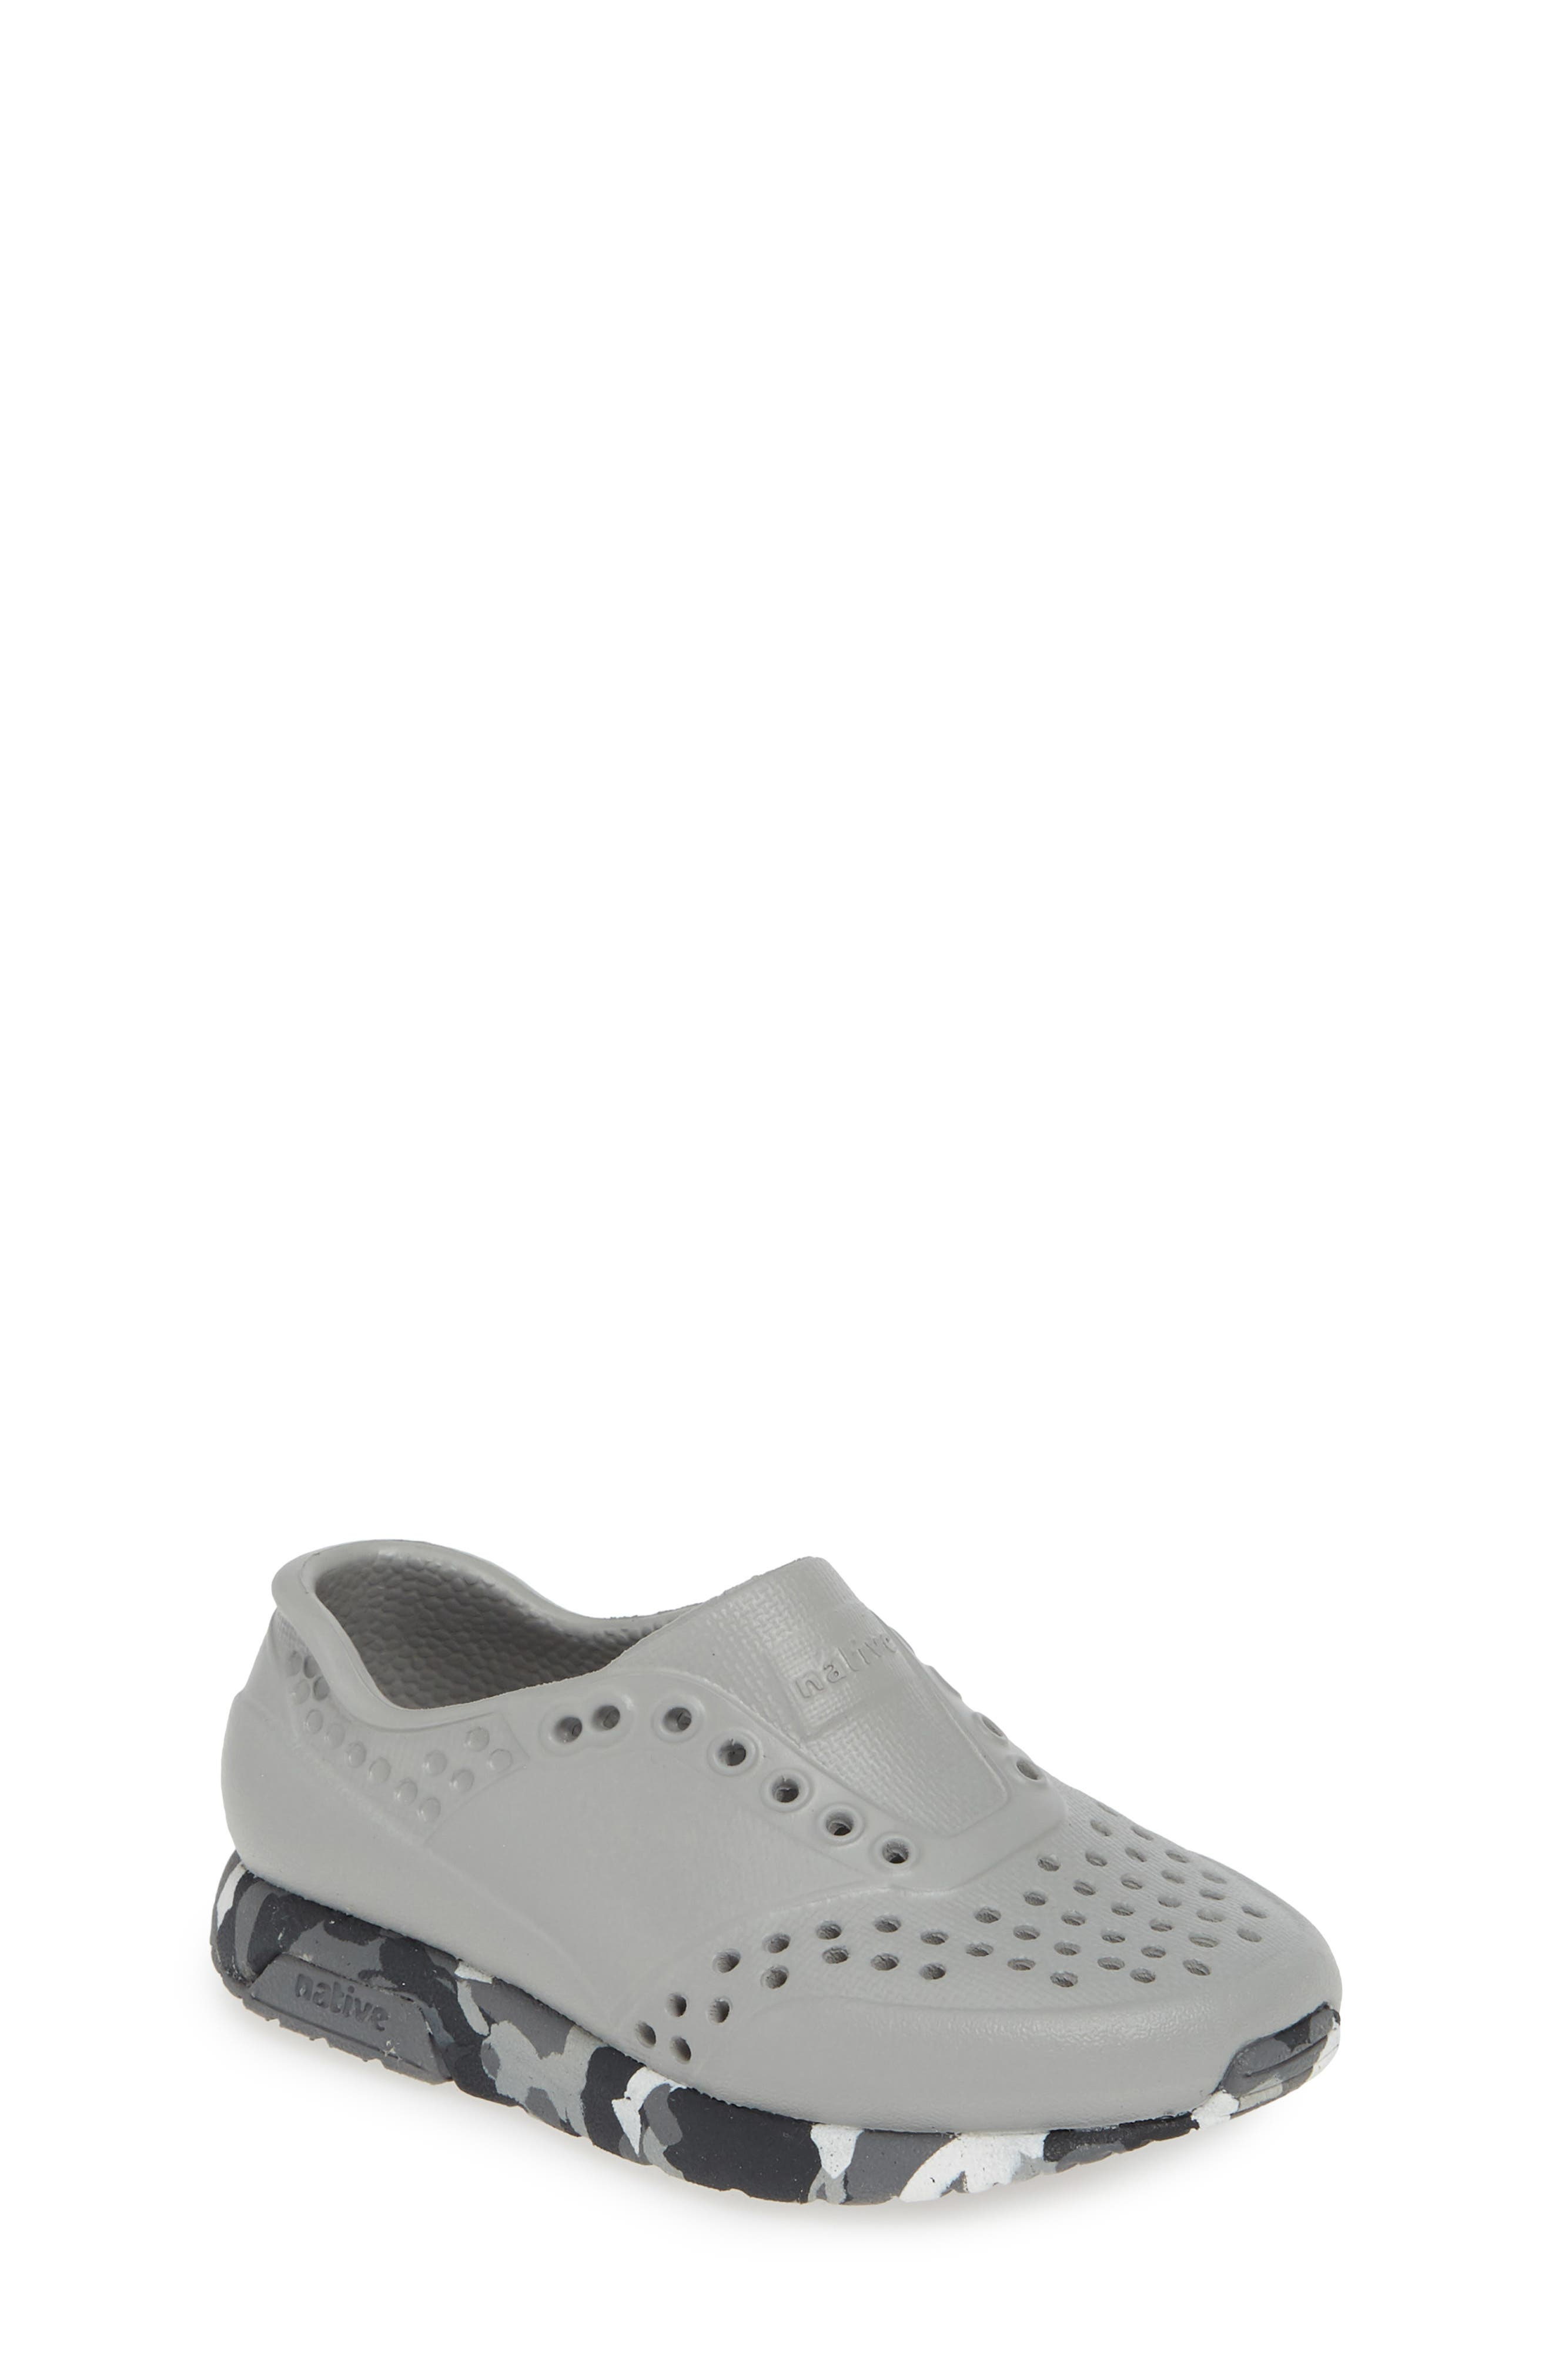 Native Shoes Lennox Slip-On Sneaker